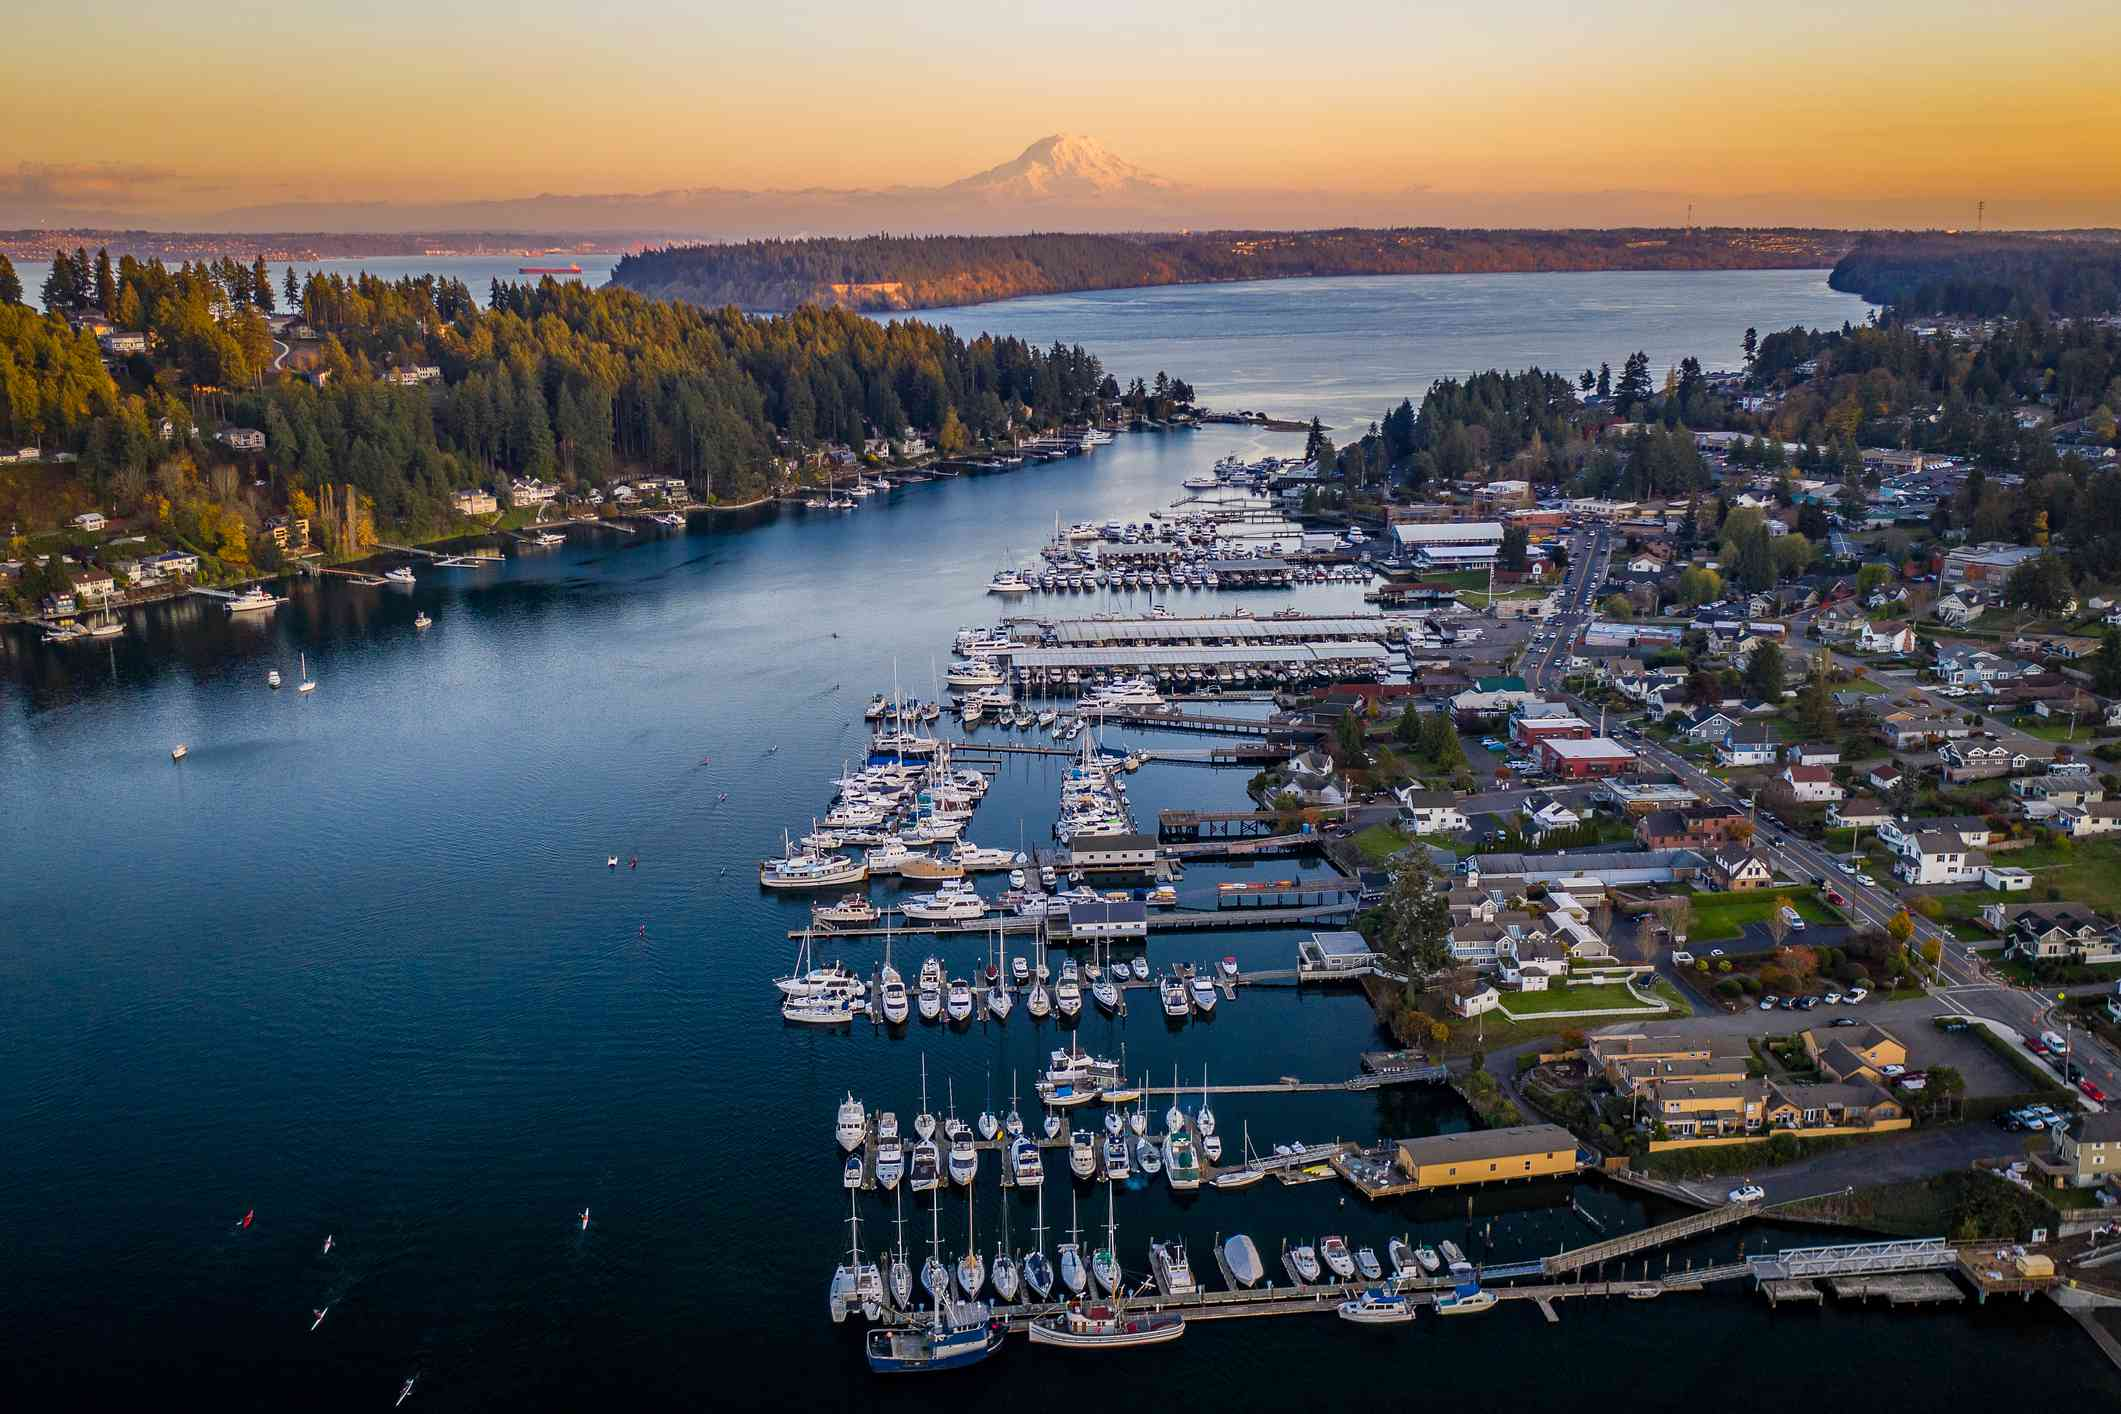 A drone view of boats in Gig Harbor Washington at sunset with Mt Rainier in the far distance